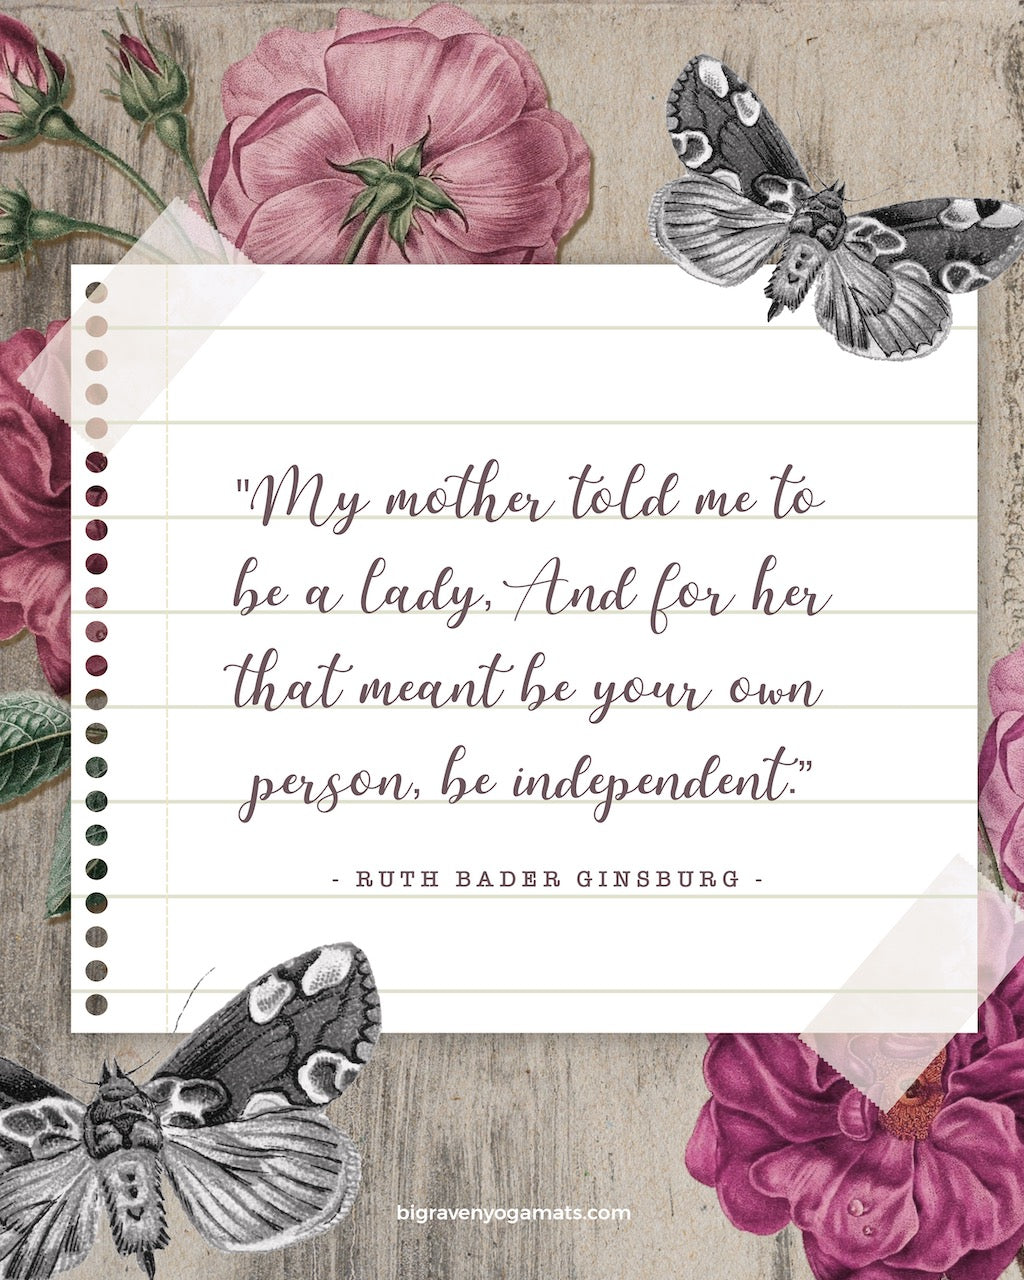 Quote: My mother told me to be a lady. And for her that meant be your own person, be independent. Ruth Bader Ginsberg